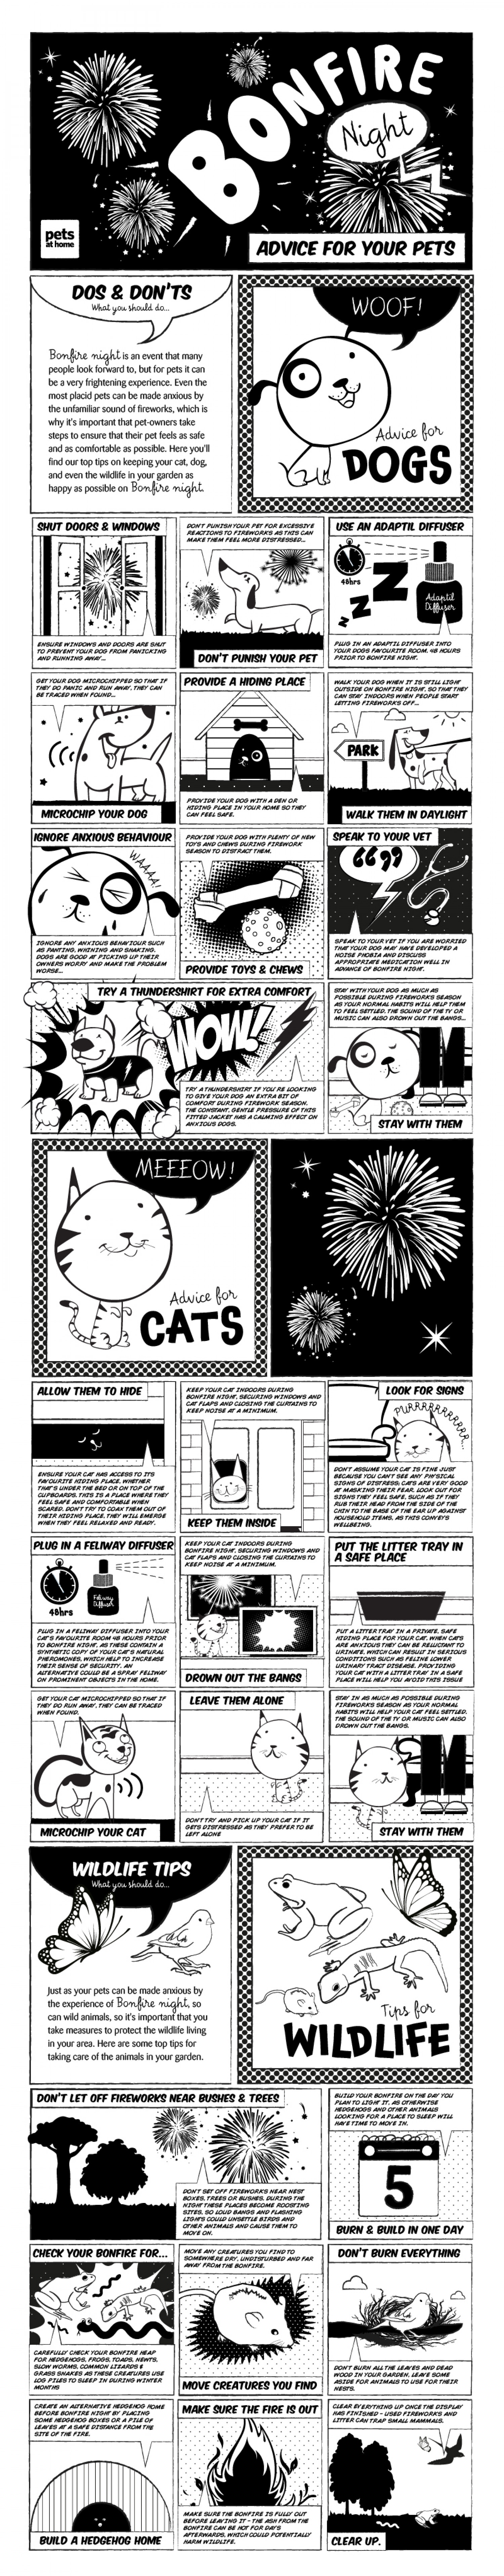 Bonfire Night: Advice for Your Pet Infographic